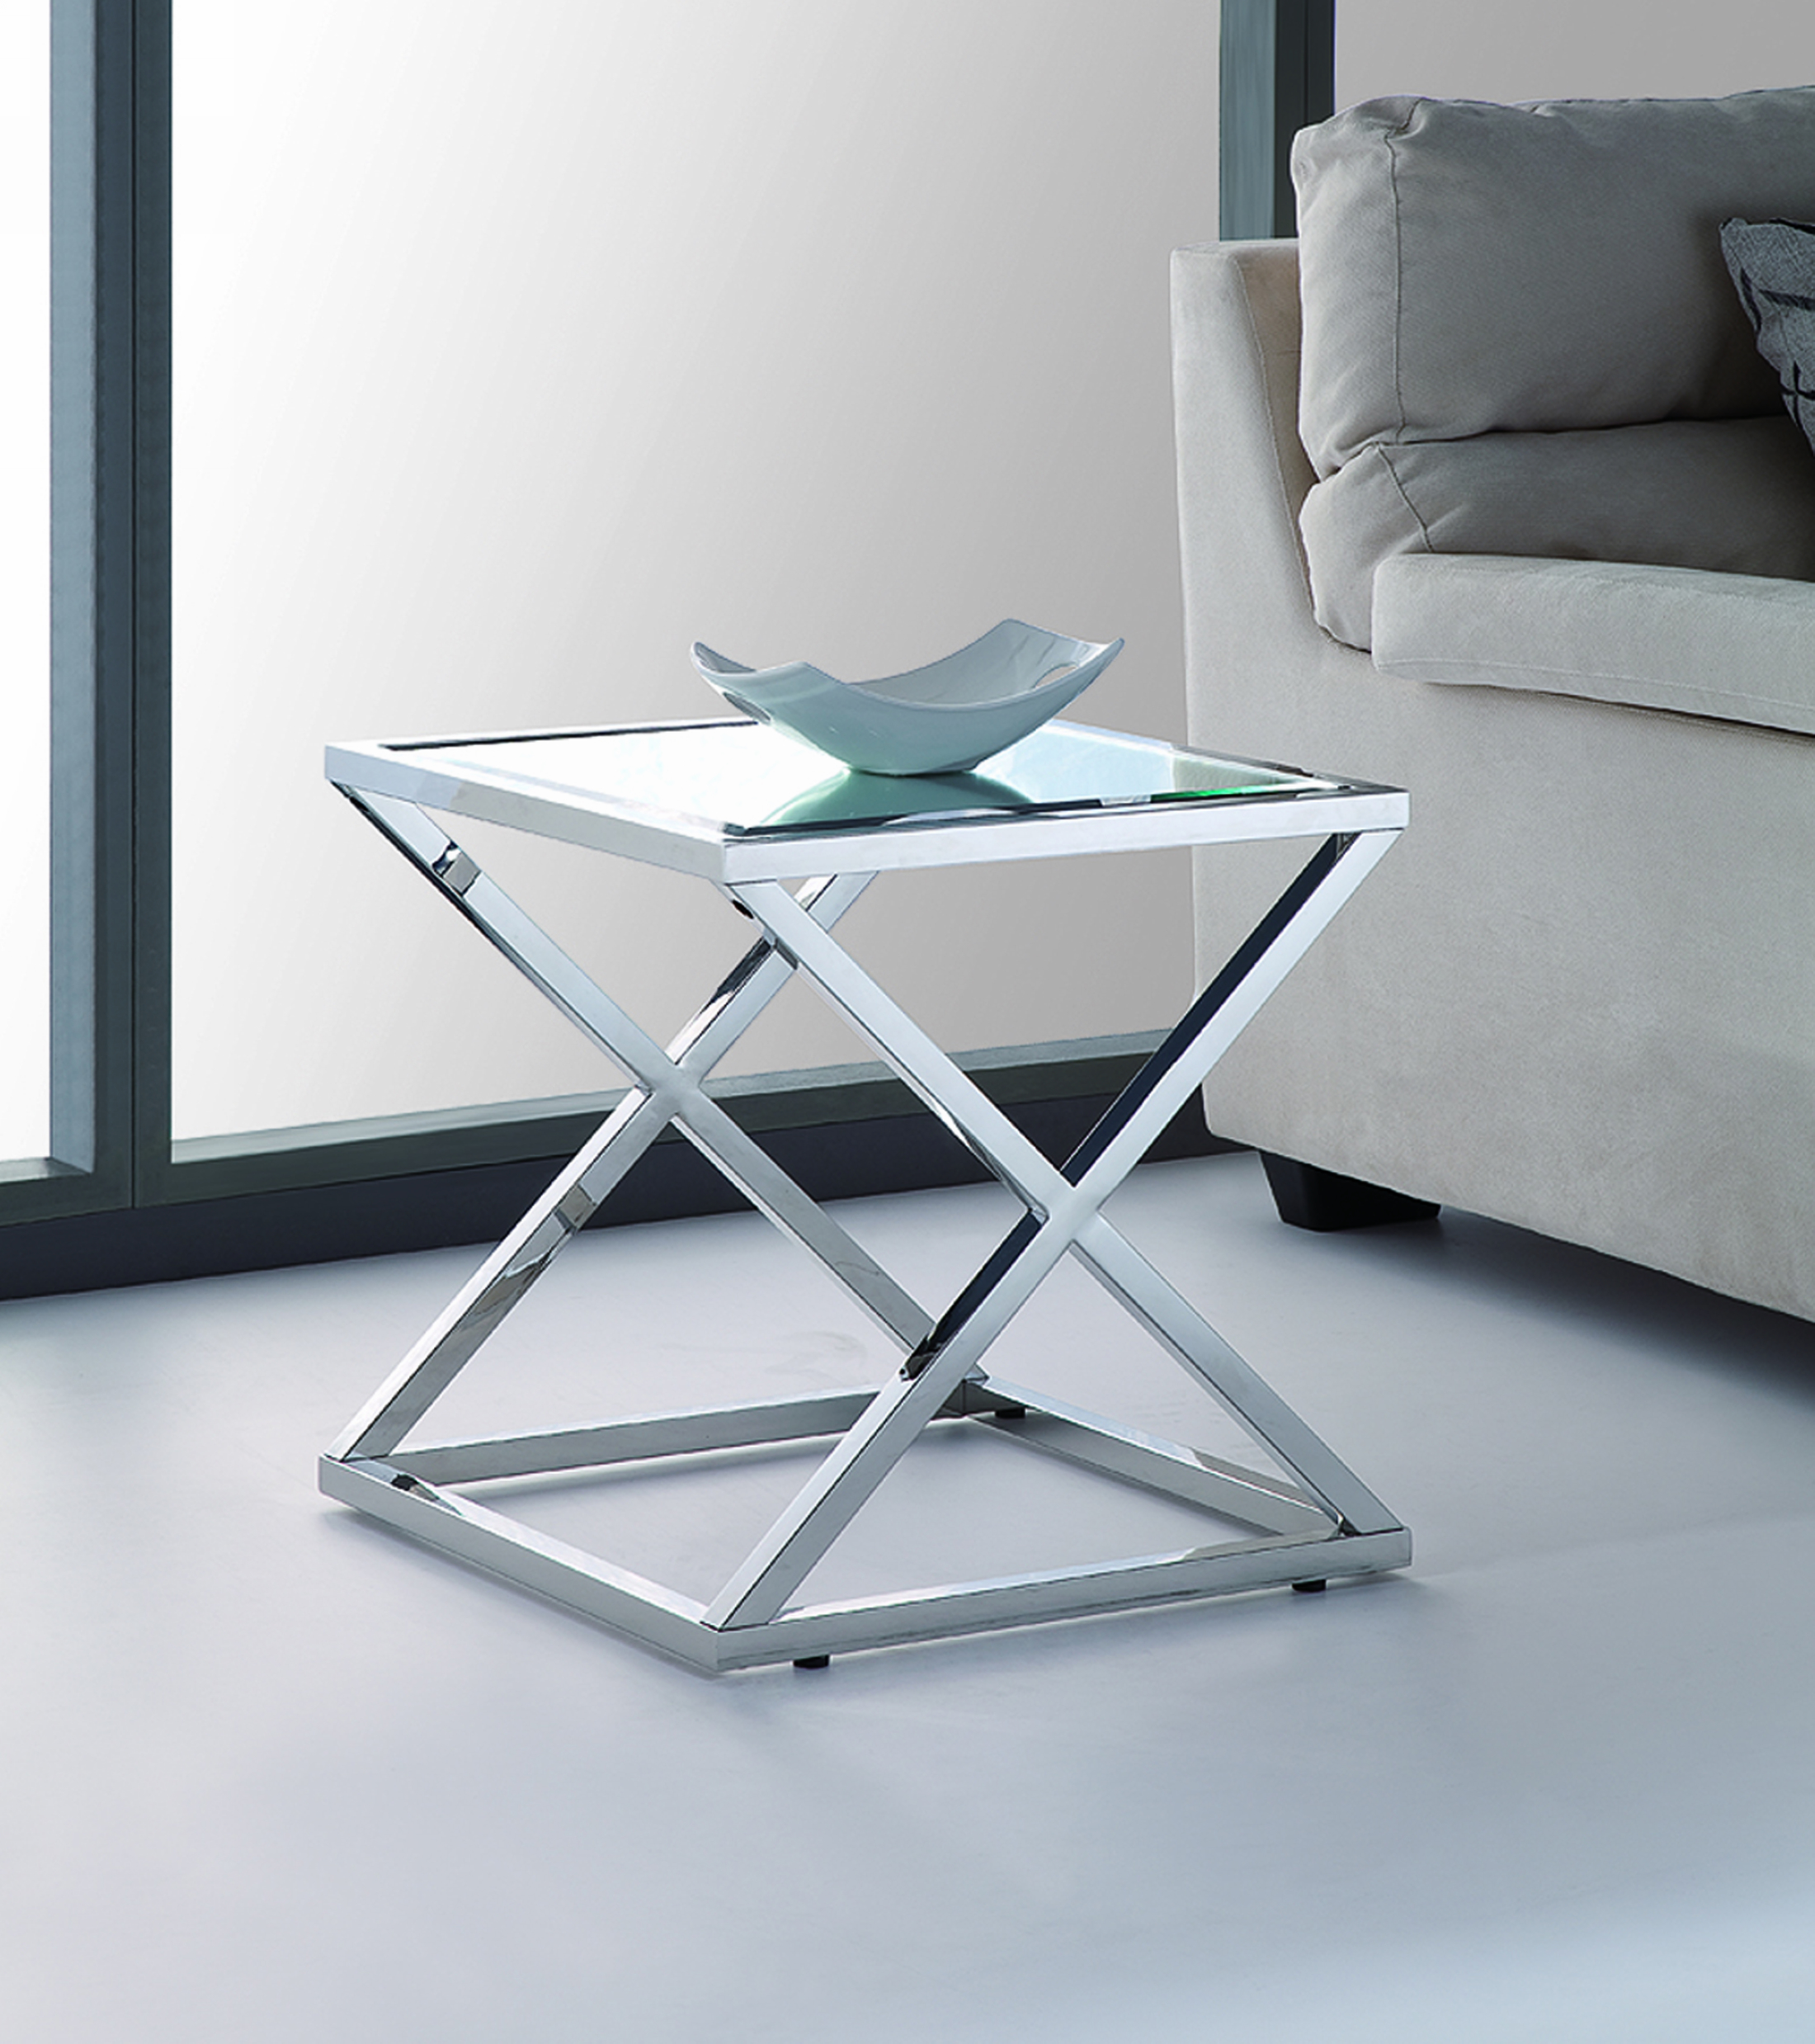 Magnificent Stainless Steel and Glass Table 2200 x 2477 · 2479 kB · jpeg